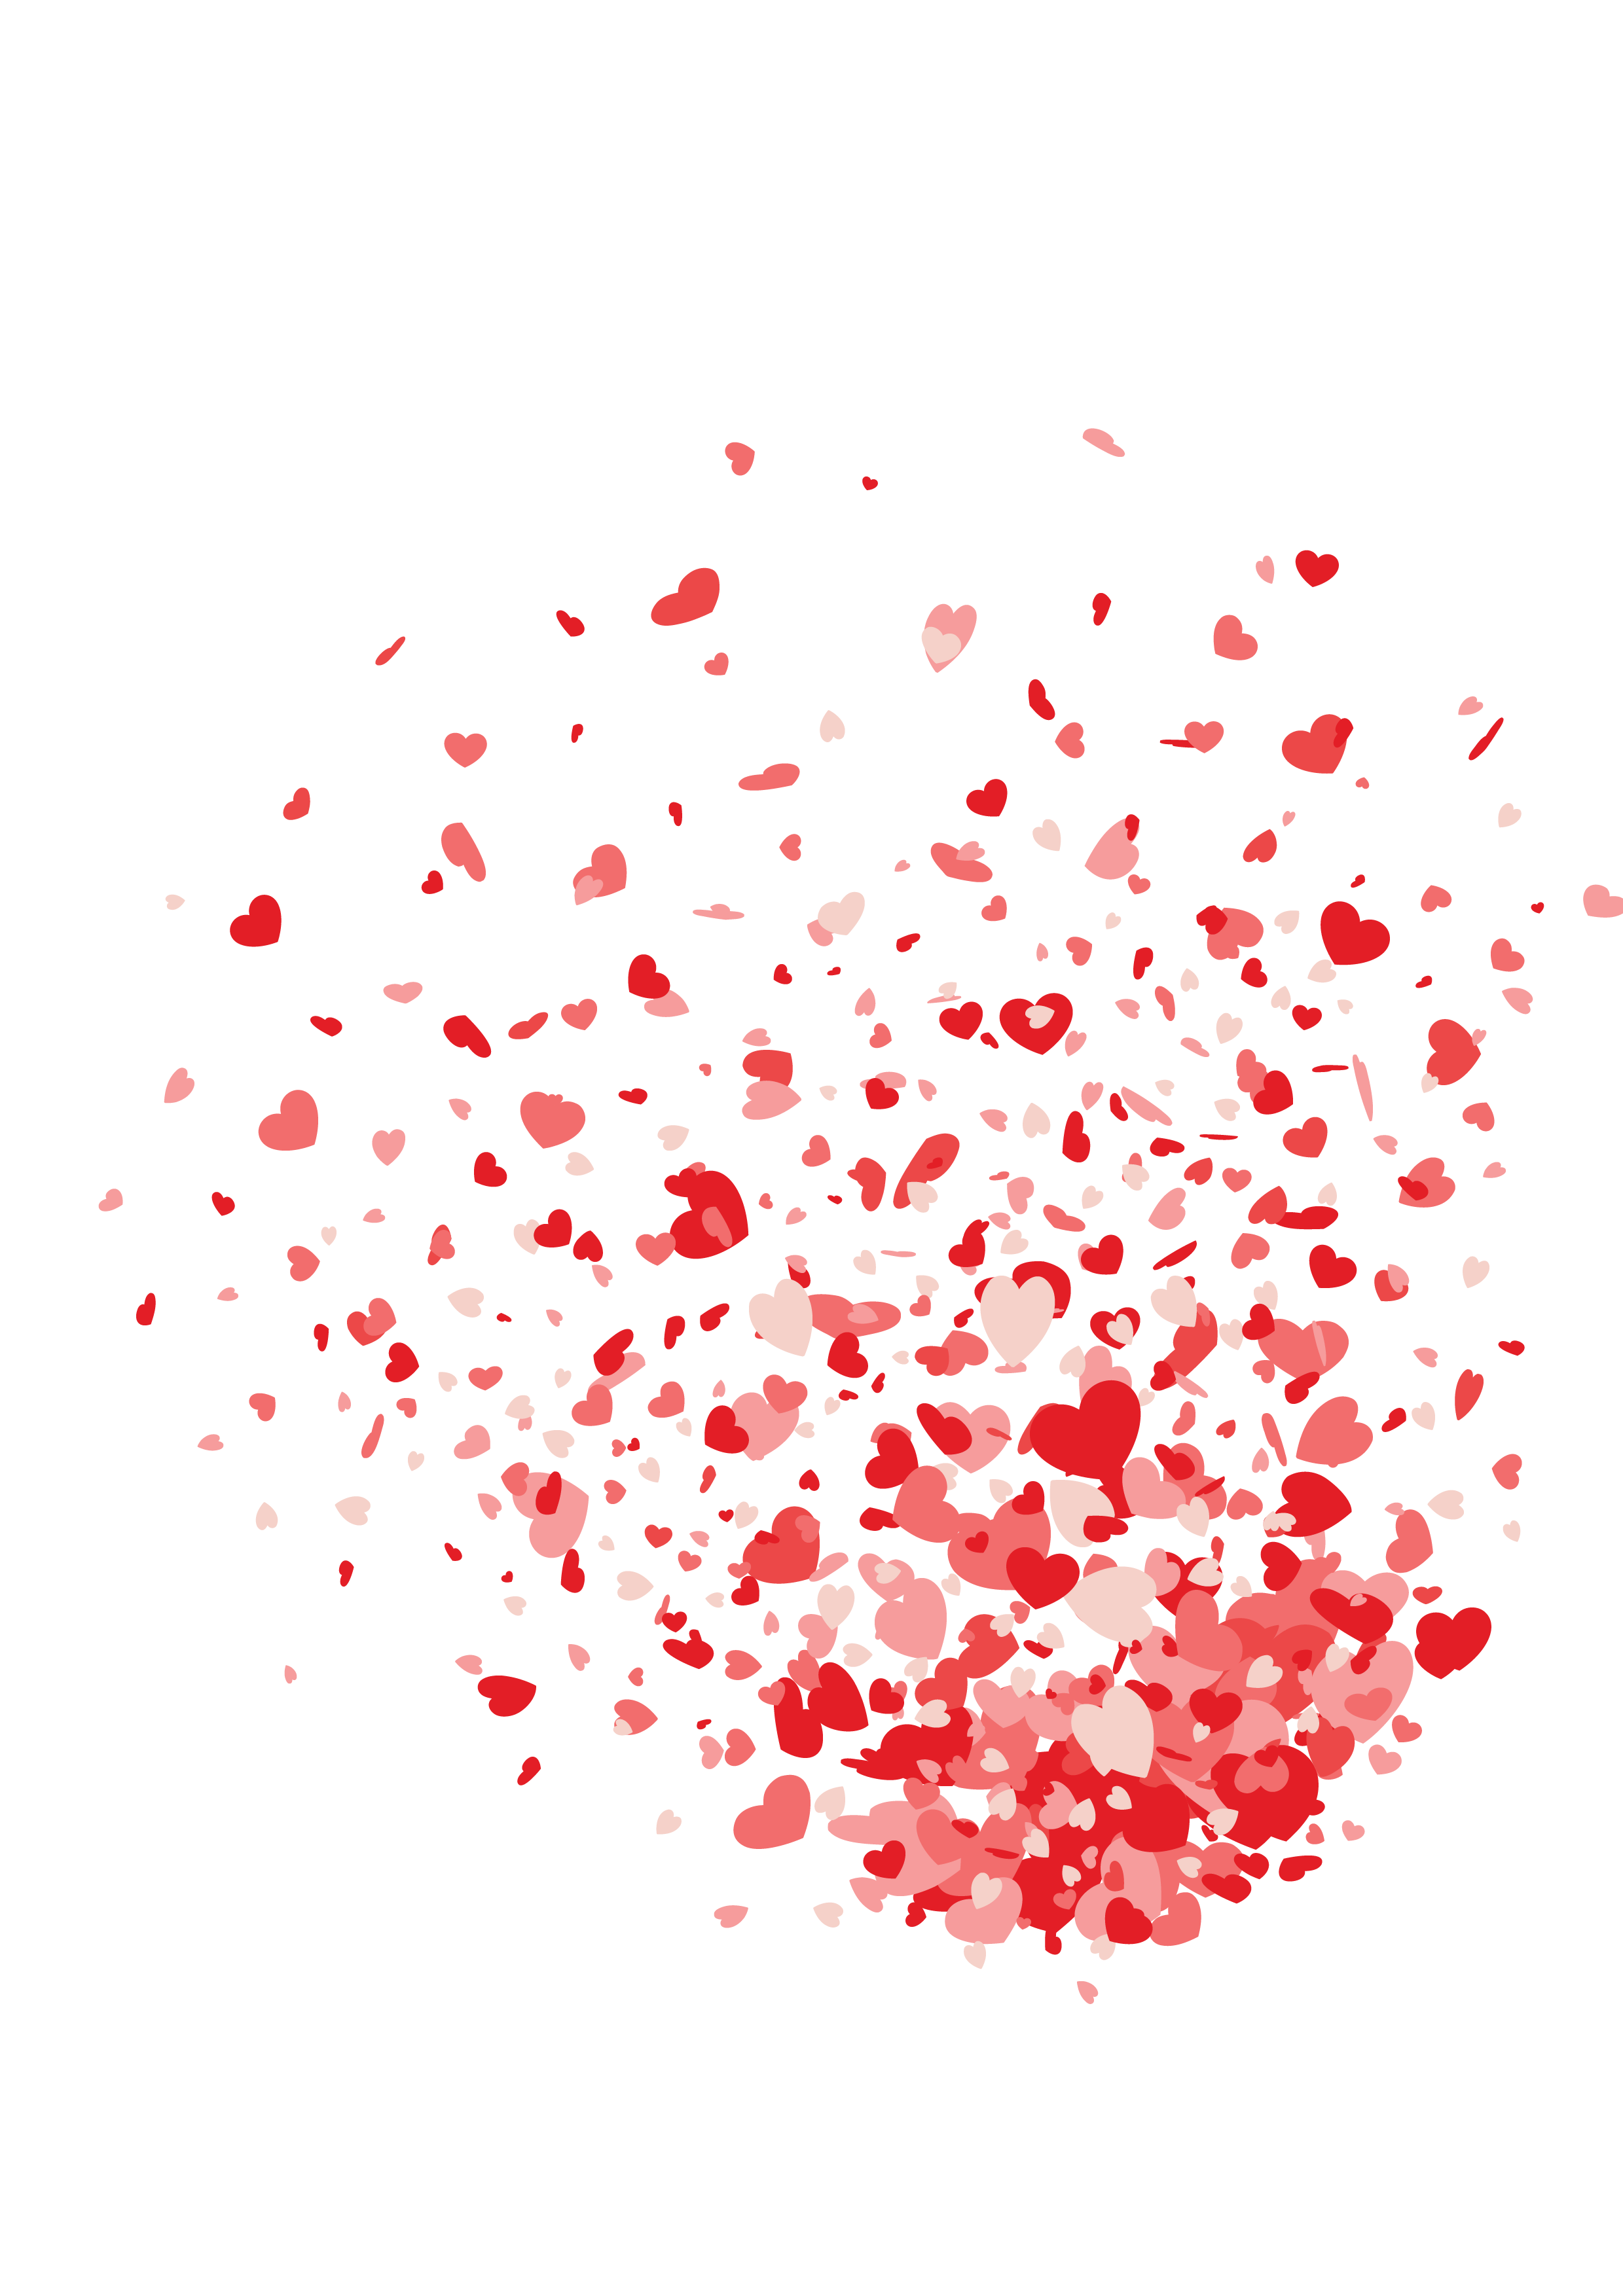 Heart confetti png. Valentine s day gift